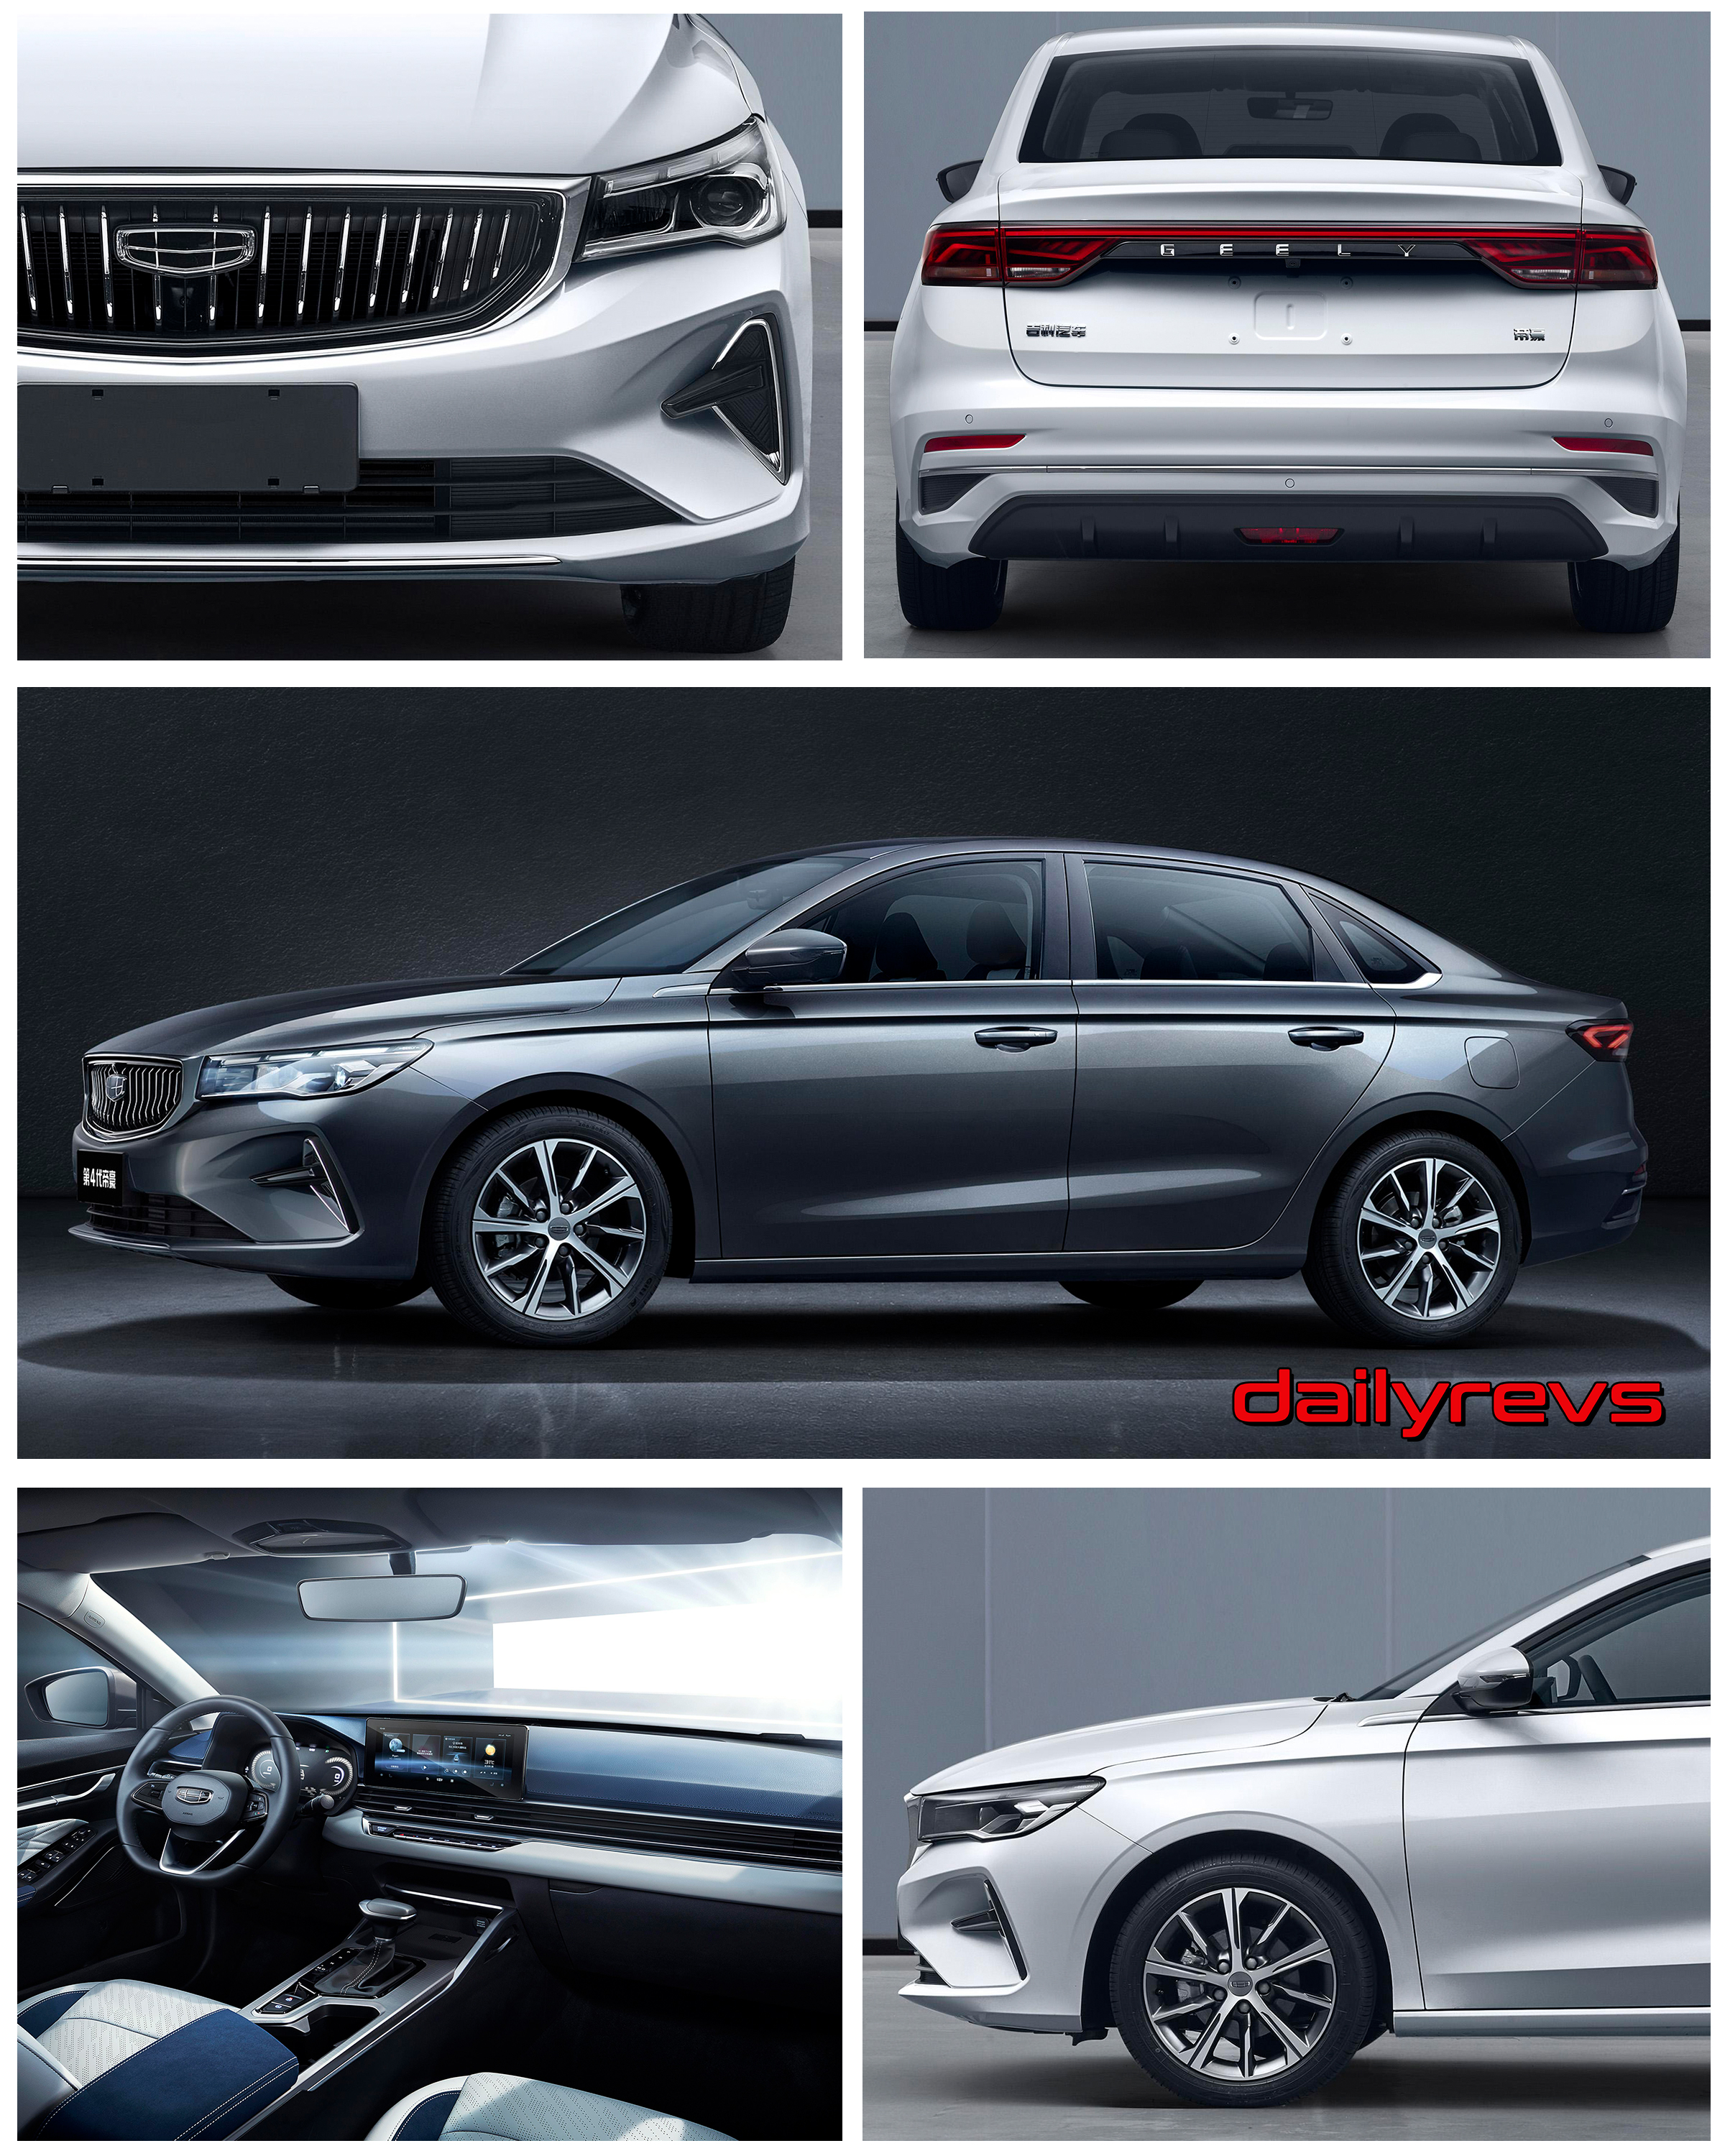 2022 Geely Emgrand